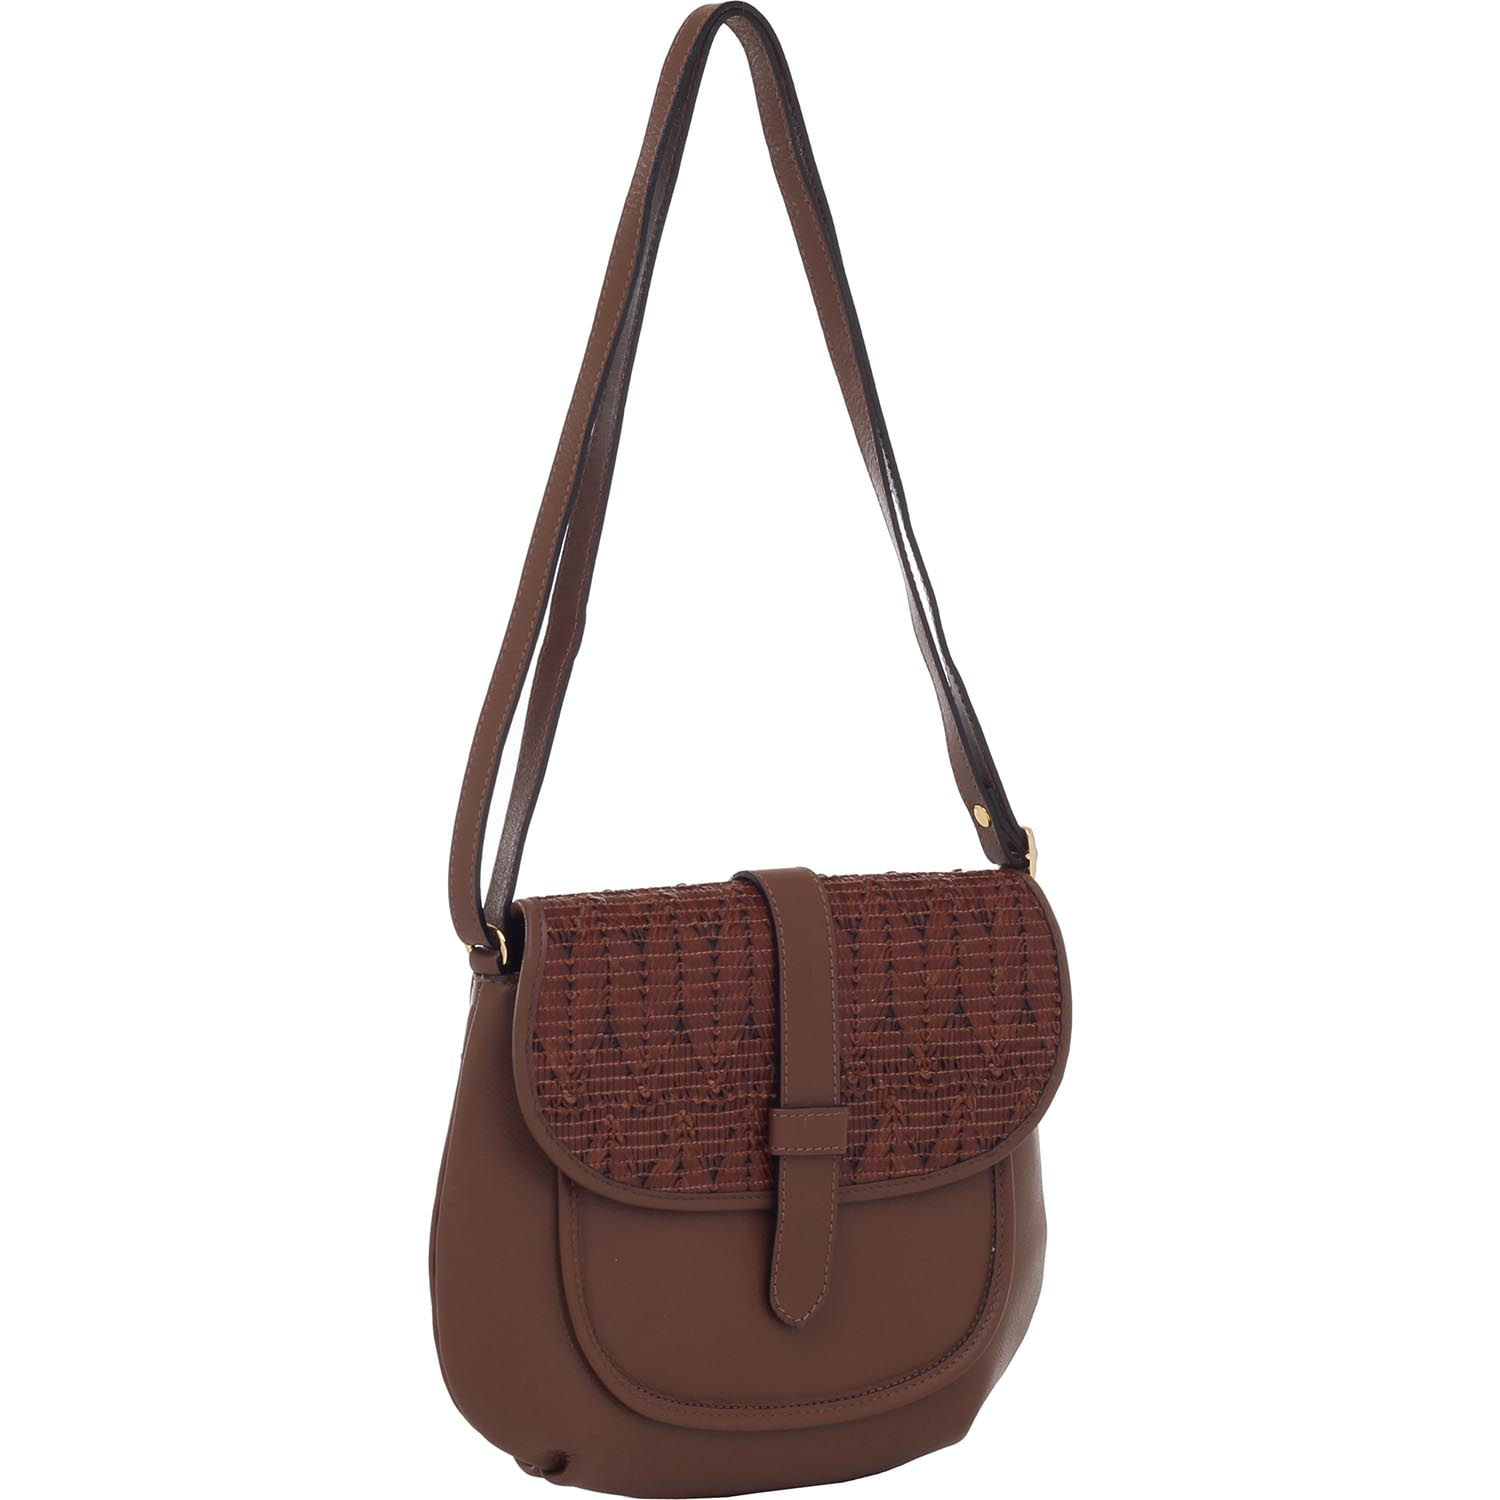 73c9be6d1 Bolsa Couro Transversal Smartbag Tribal Conhaque - 78010. Previous. Loading  zoom · Loading zoom · Loading zoom